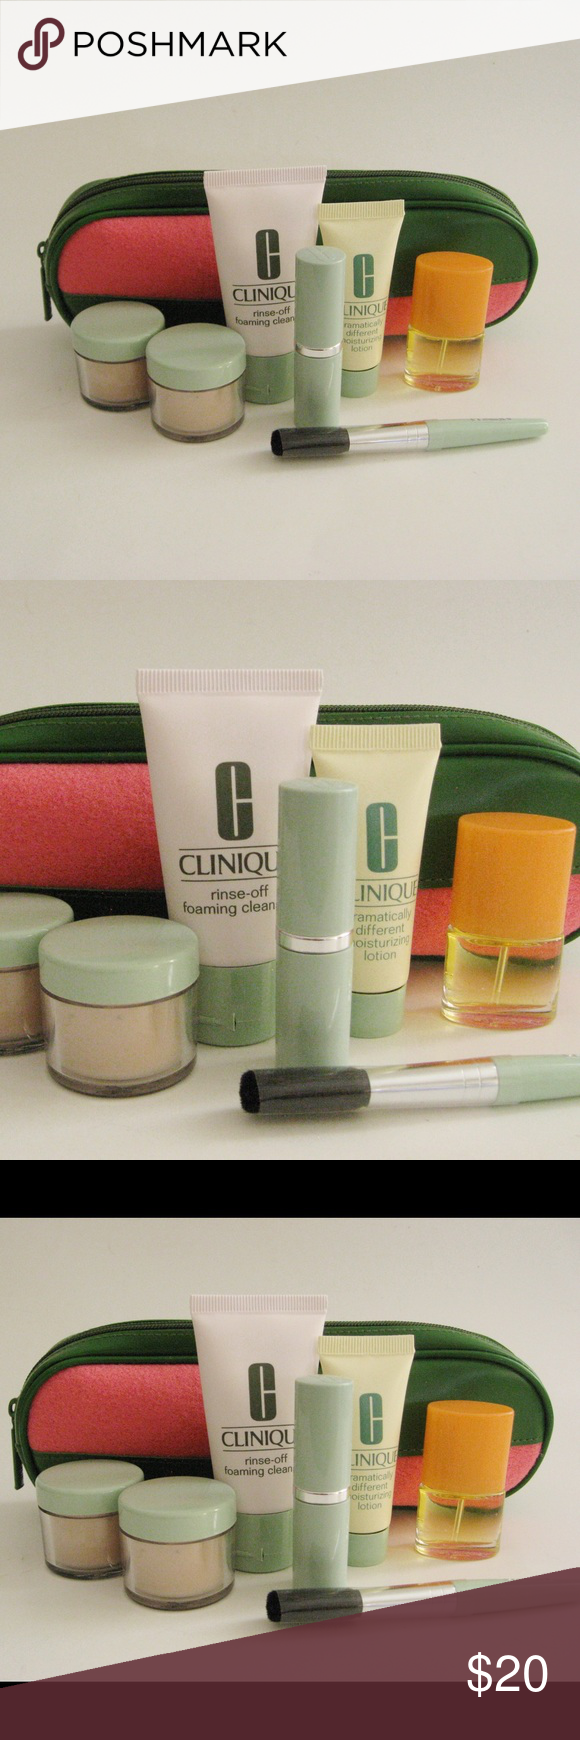 Clinique Makeup Travel Set1 Travel makeup, Clinique